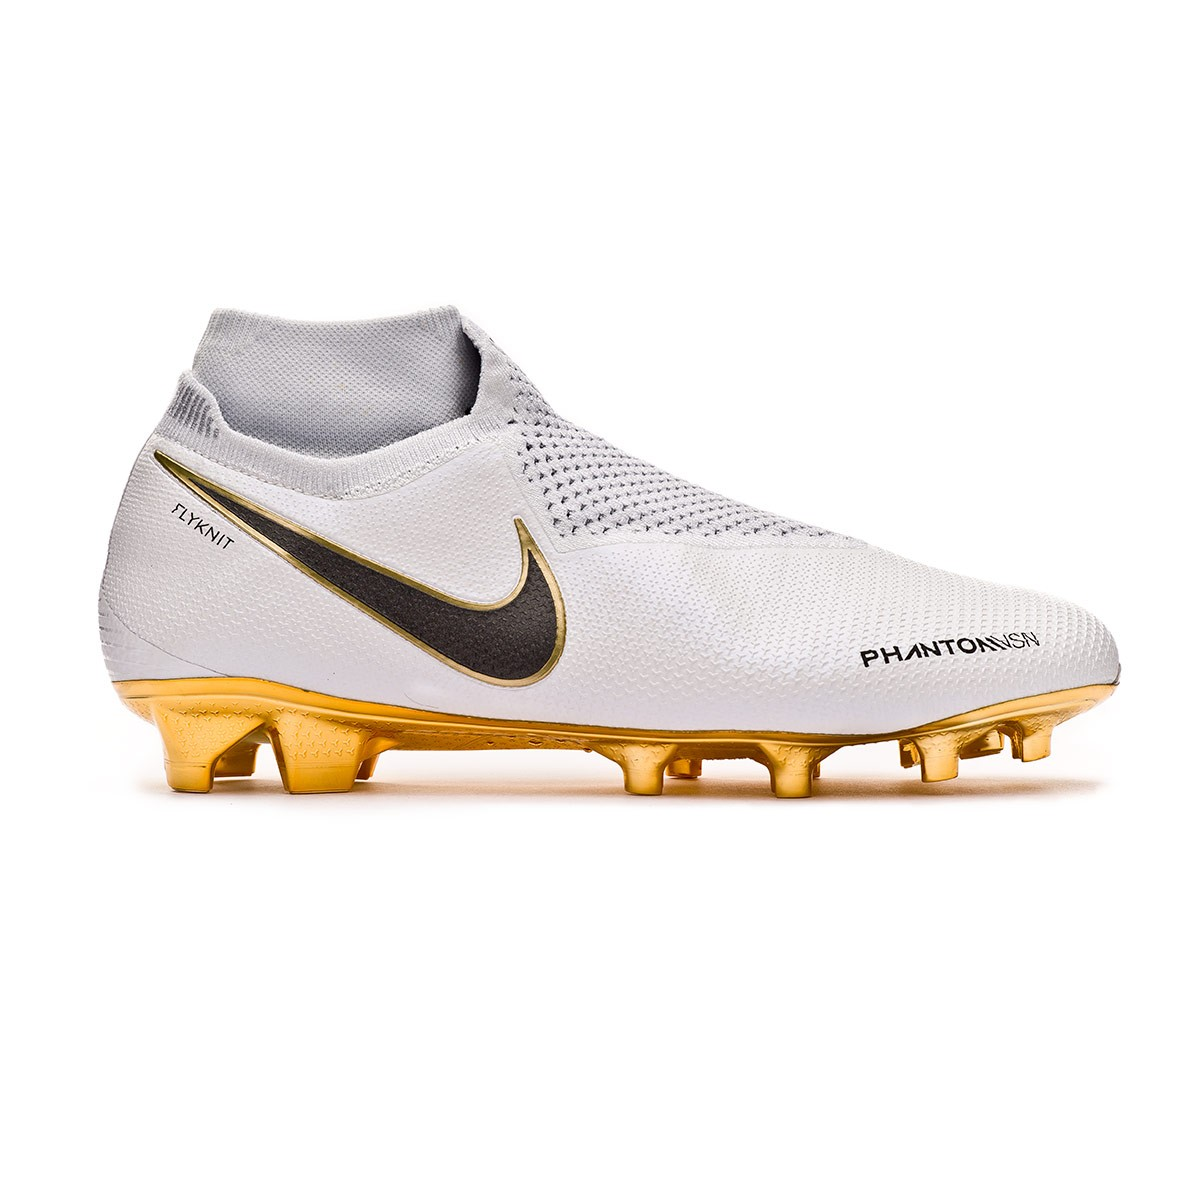 c3415163c8f Football Boots Nike Phantom Vision Elite DF FG Limited Edition  White-Metallic gold - Tienda de fútbol Fútbol Emotion